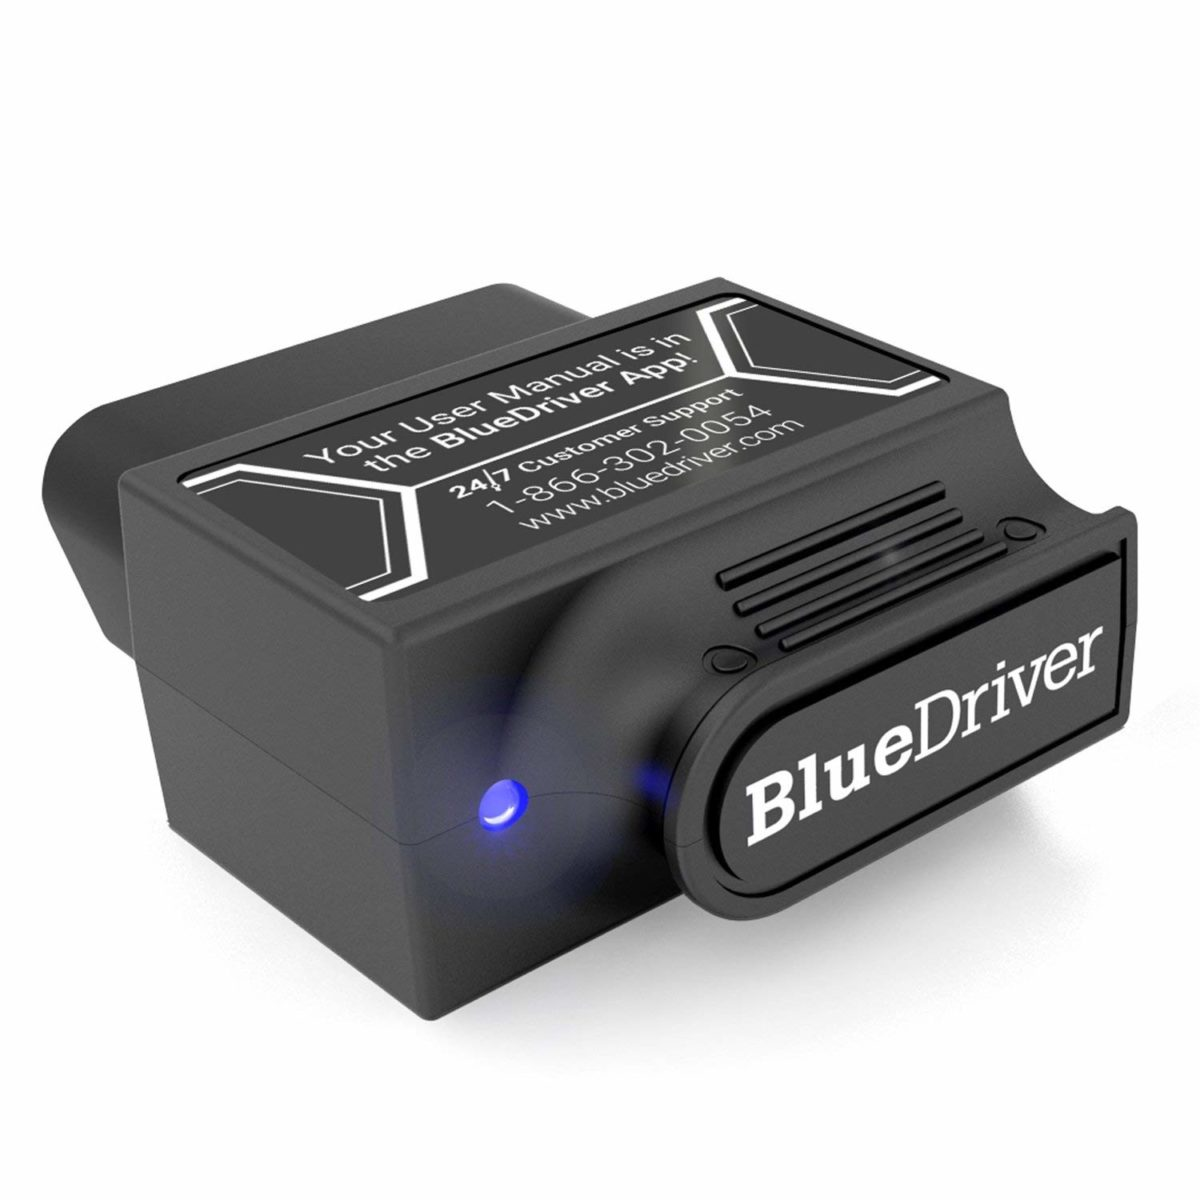 Best Obd2 Bluetooth Scanner 2019 16 Best OBD2 Scanners 2019 [Professional Auto Diagnostic Scanners]